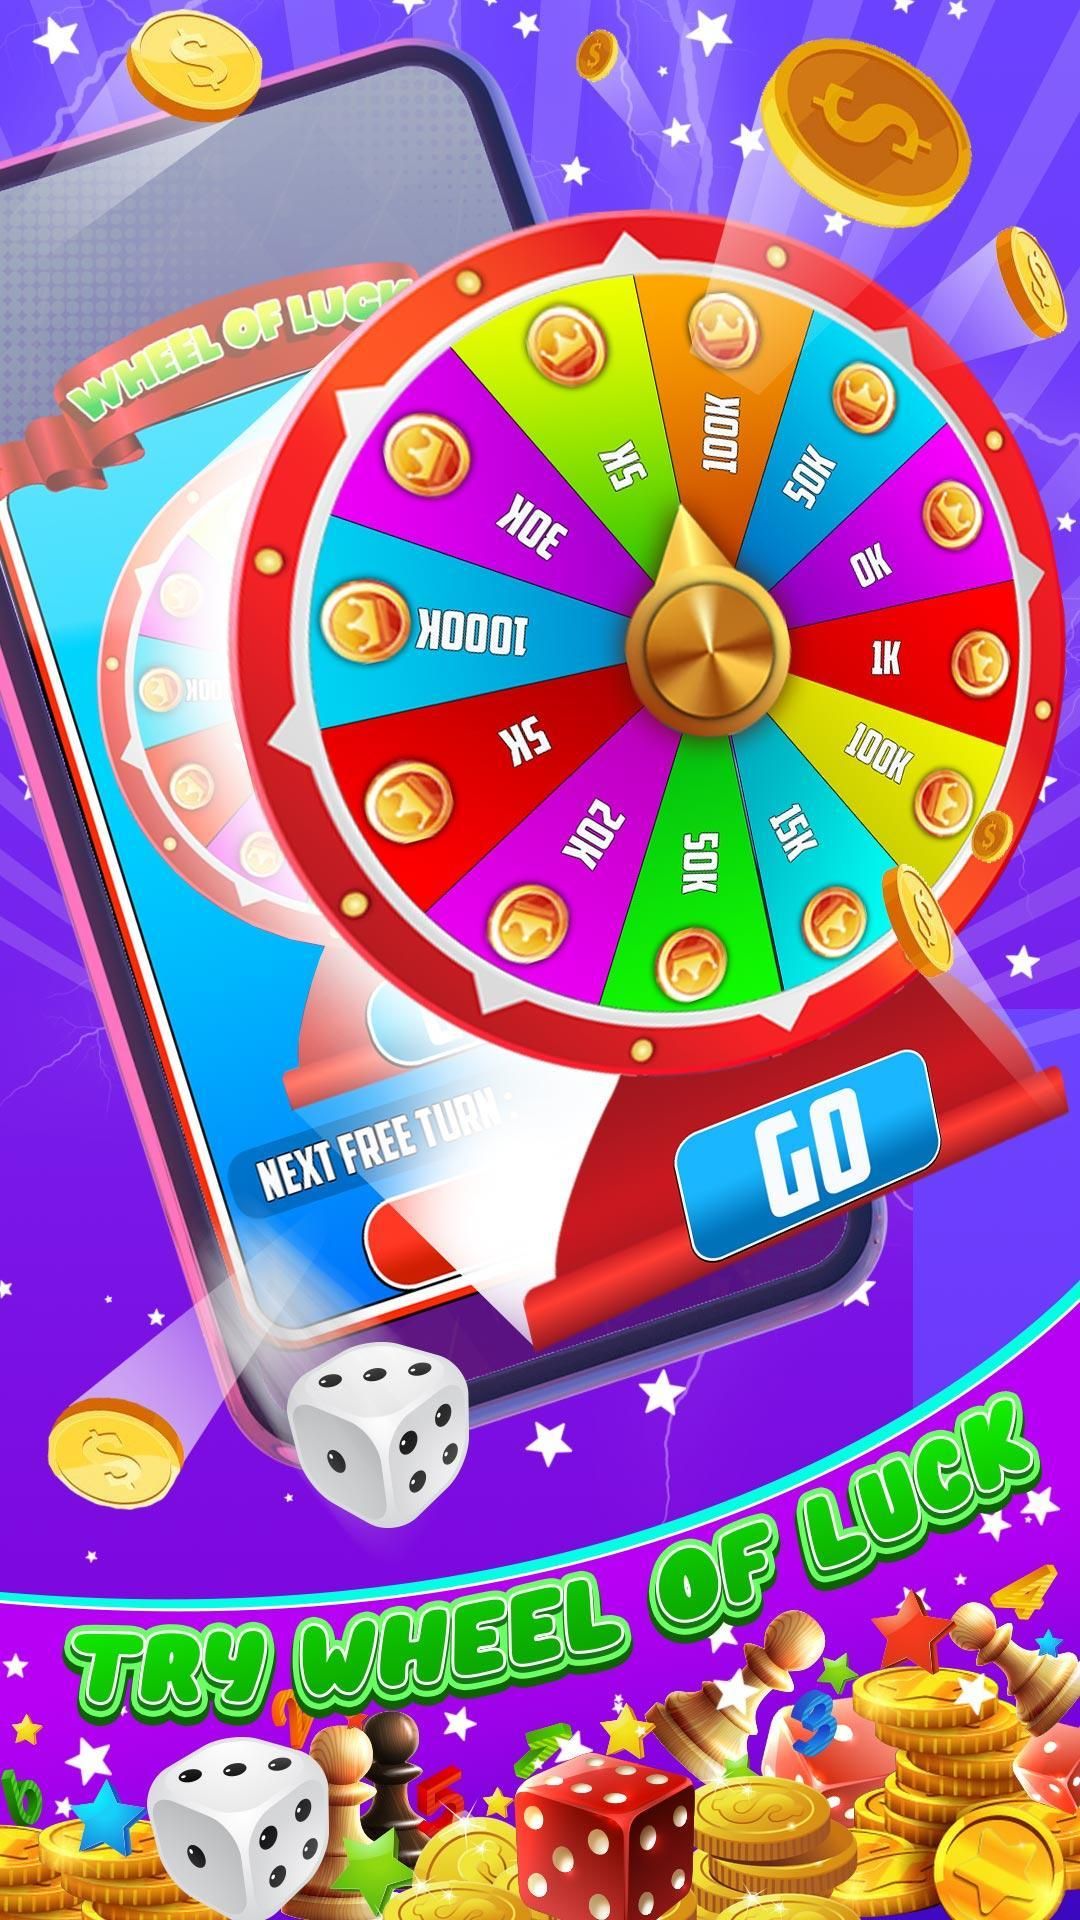 King of Ludo Dice Game with Free Voice Chat 2020 1.5.2 Screenshot 15